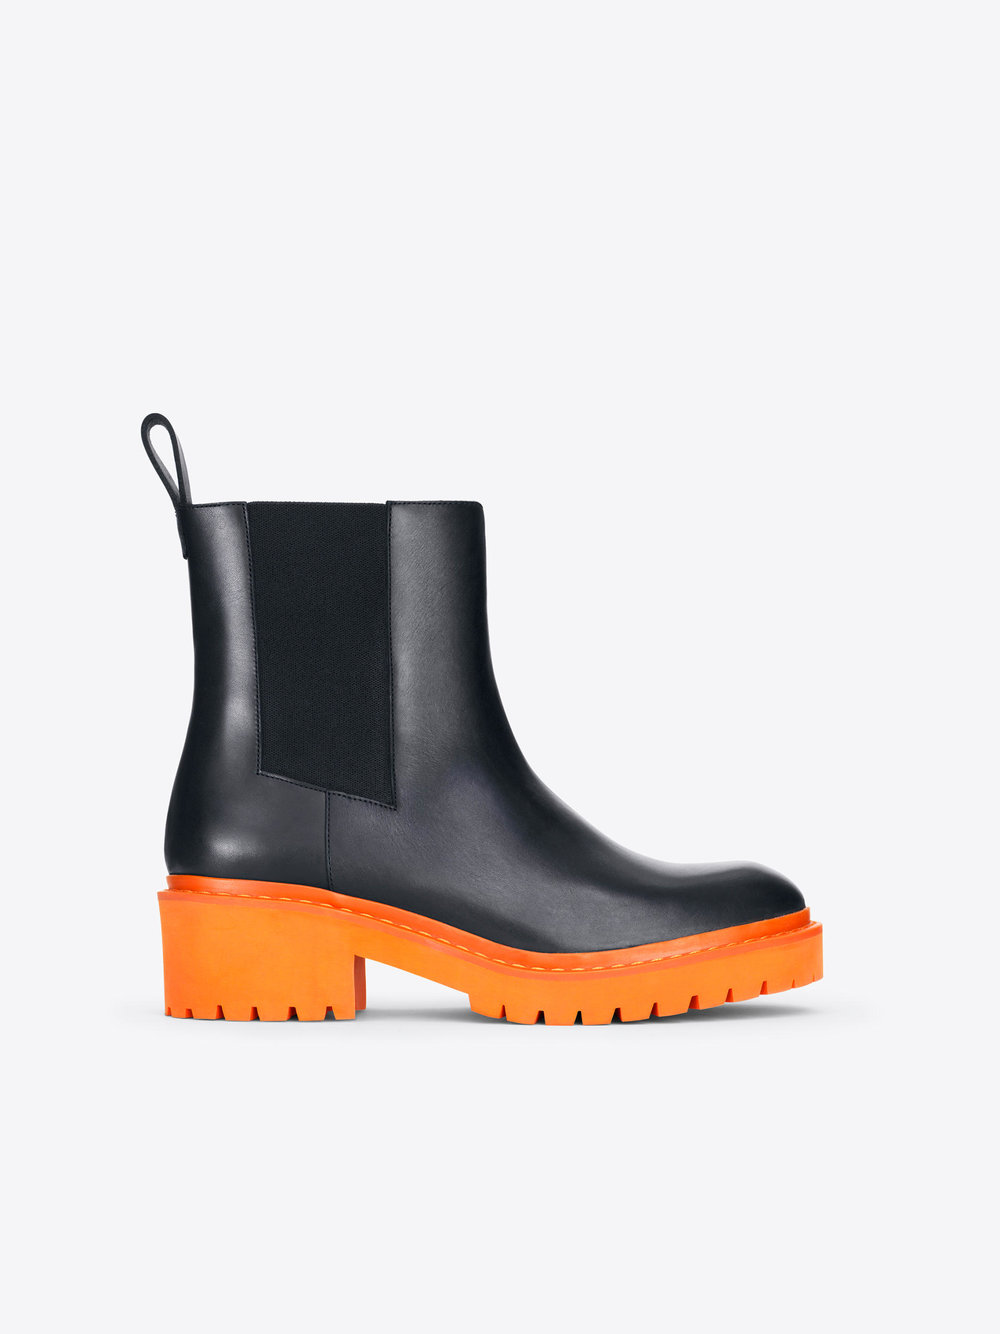 KENZO X H&M ANKLE BOOTS.jpg